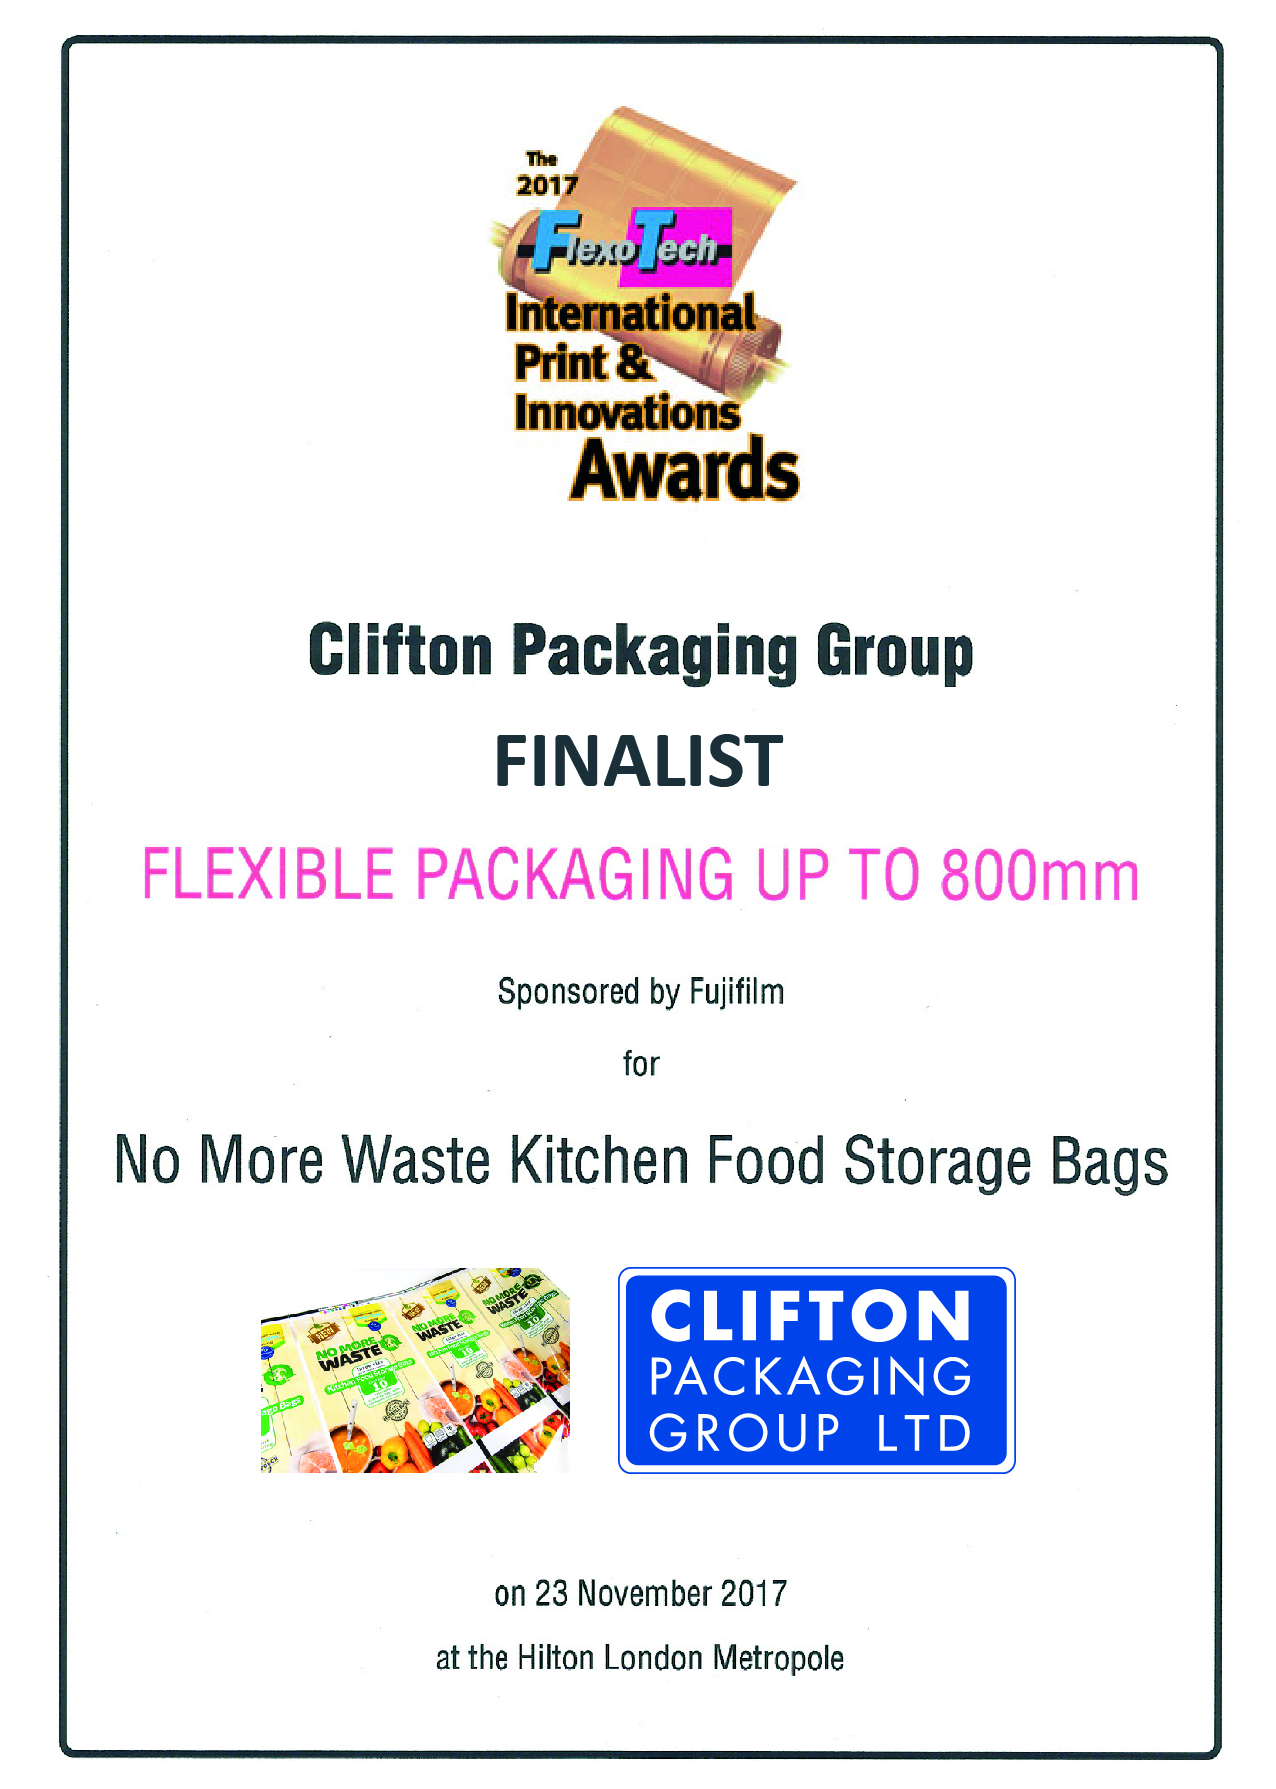 Flexo Tech Awards 2017, Finalist Flexible Packaging 800mm